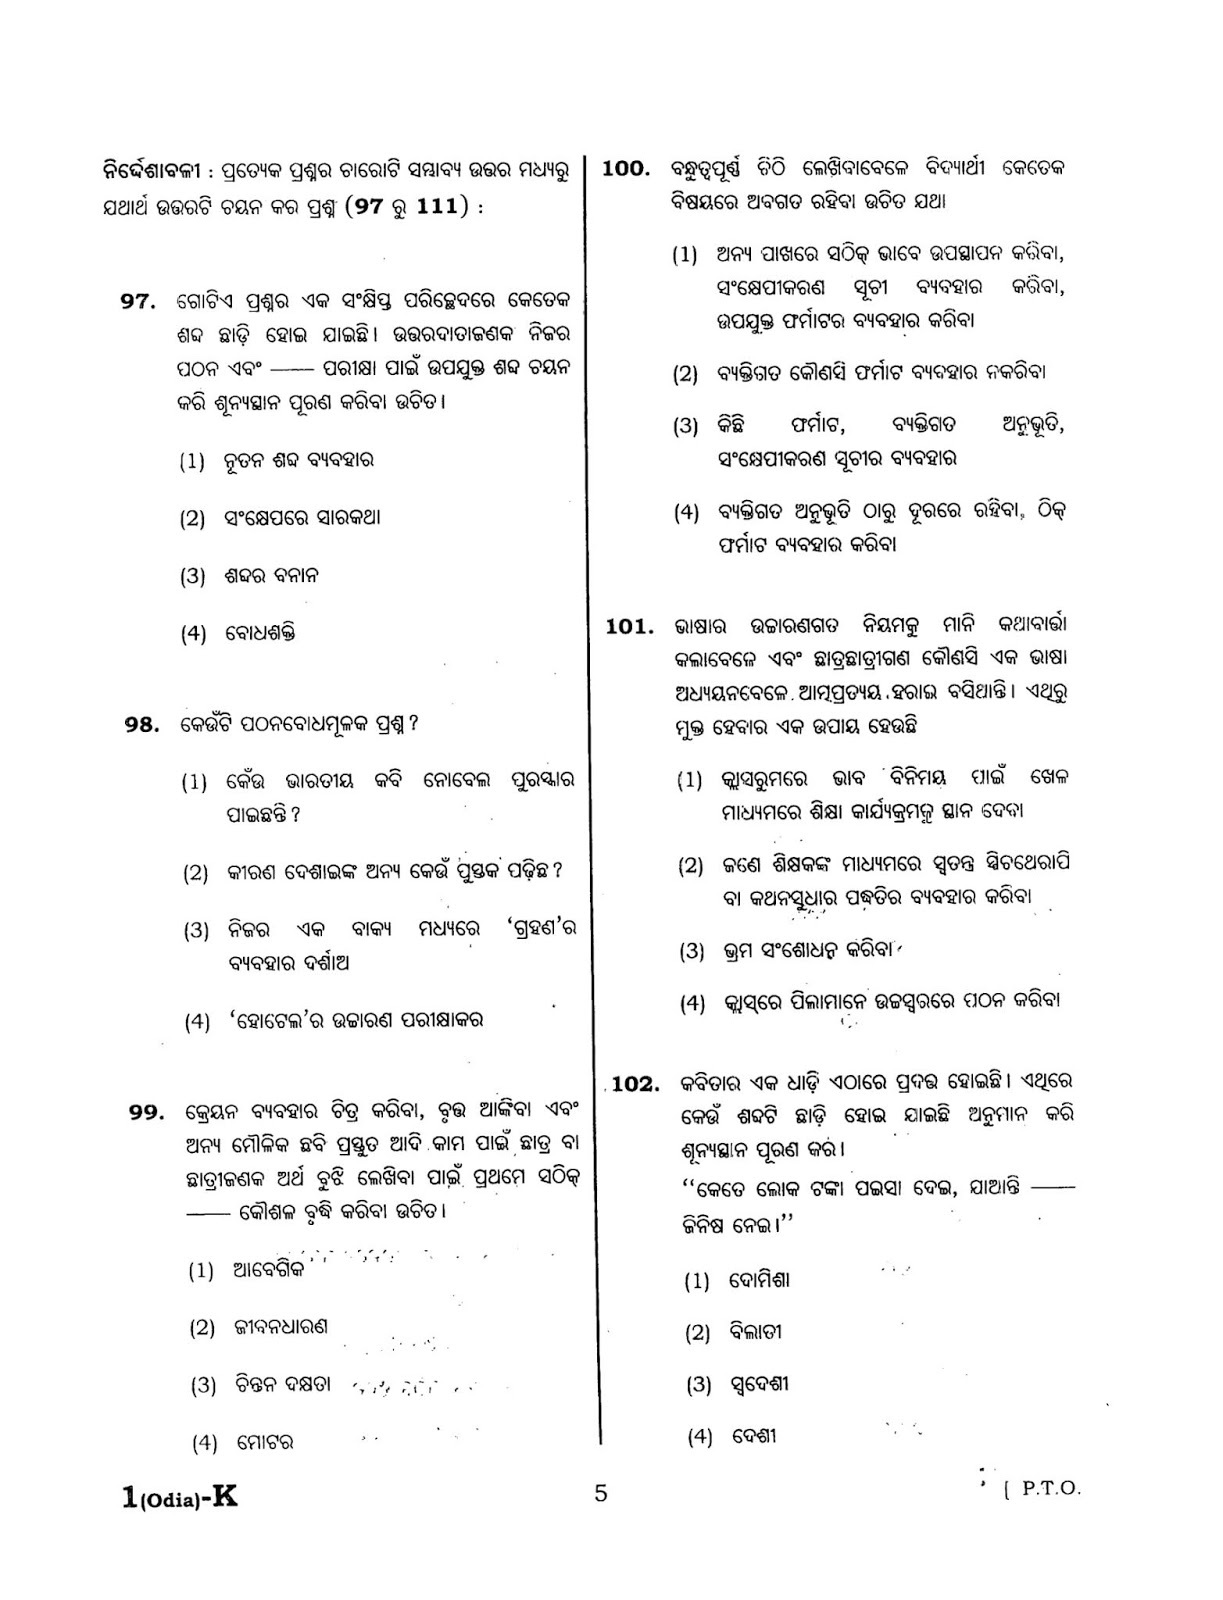 CTET Odia Language Question Paper 2019 PDF Download